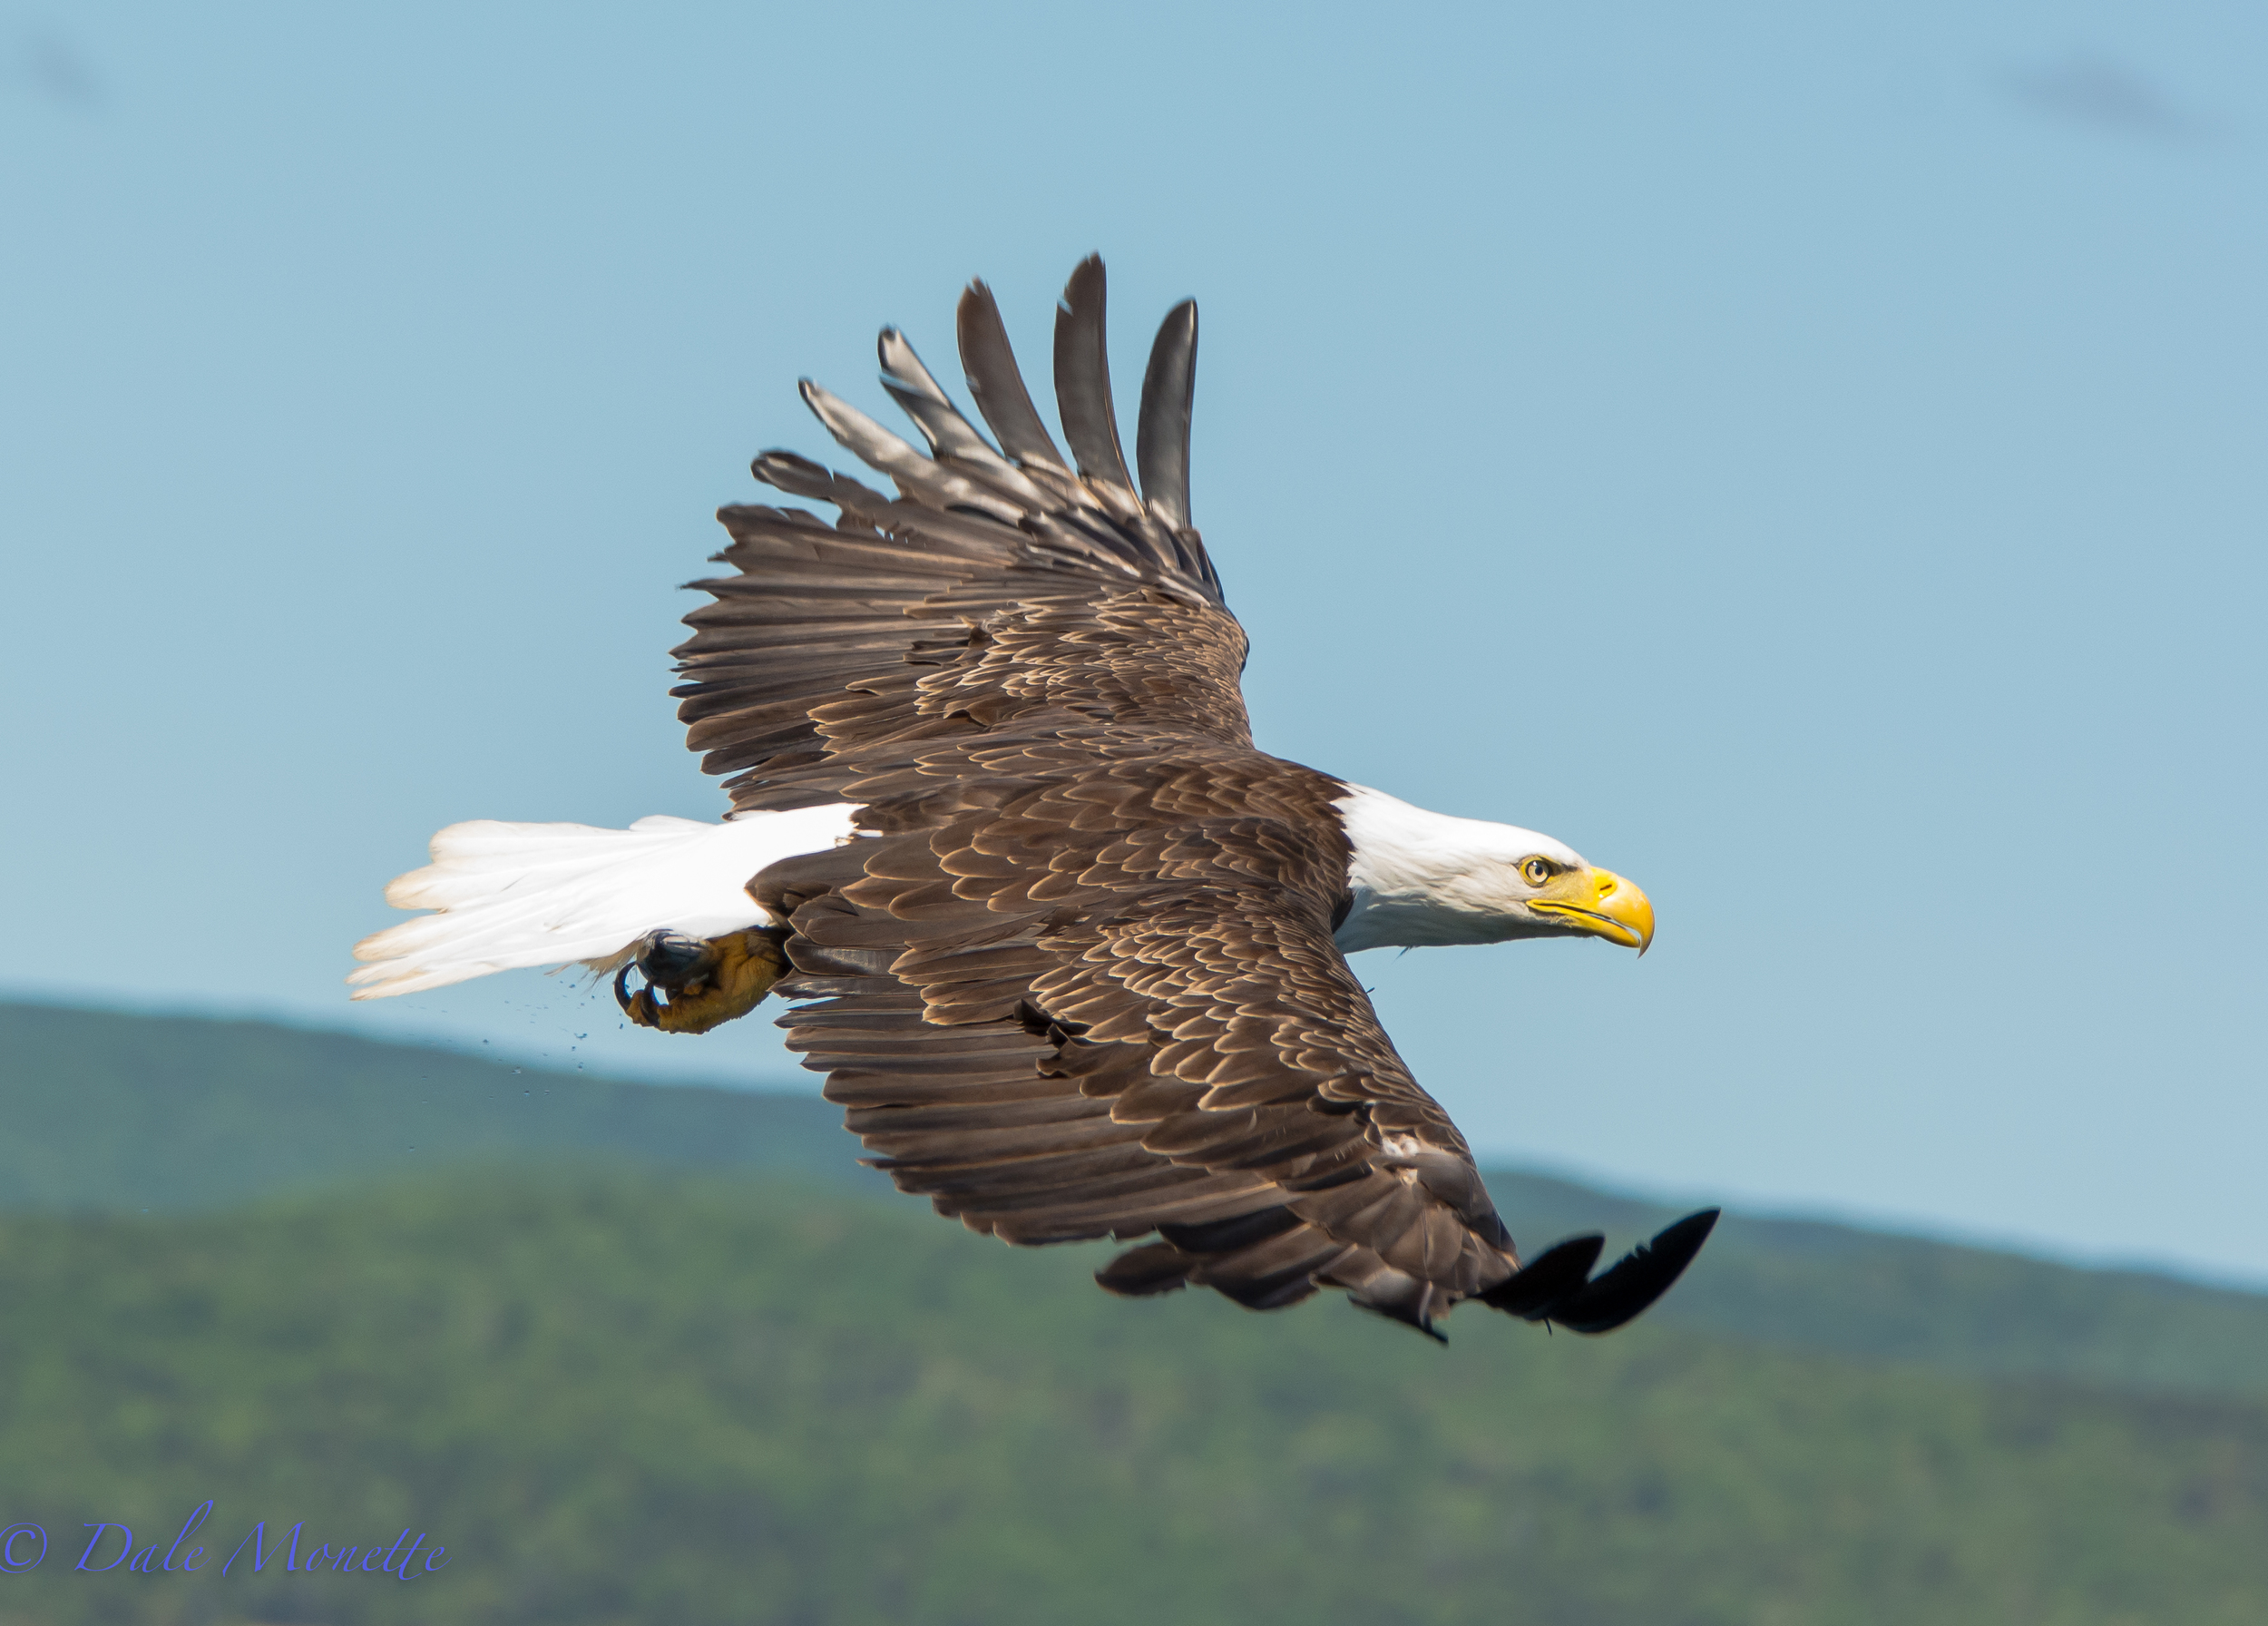 An adult bald eagle clutches a fish he just pulled out of Saint Anne's Bay on Cape Breton Island, Nova Scotia in June of 2015